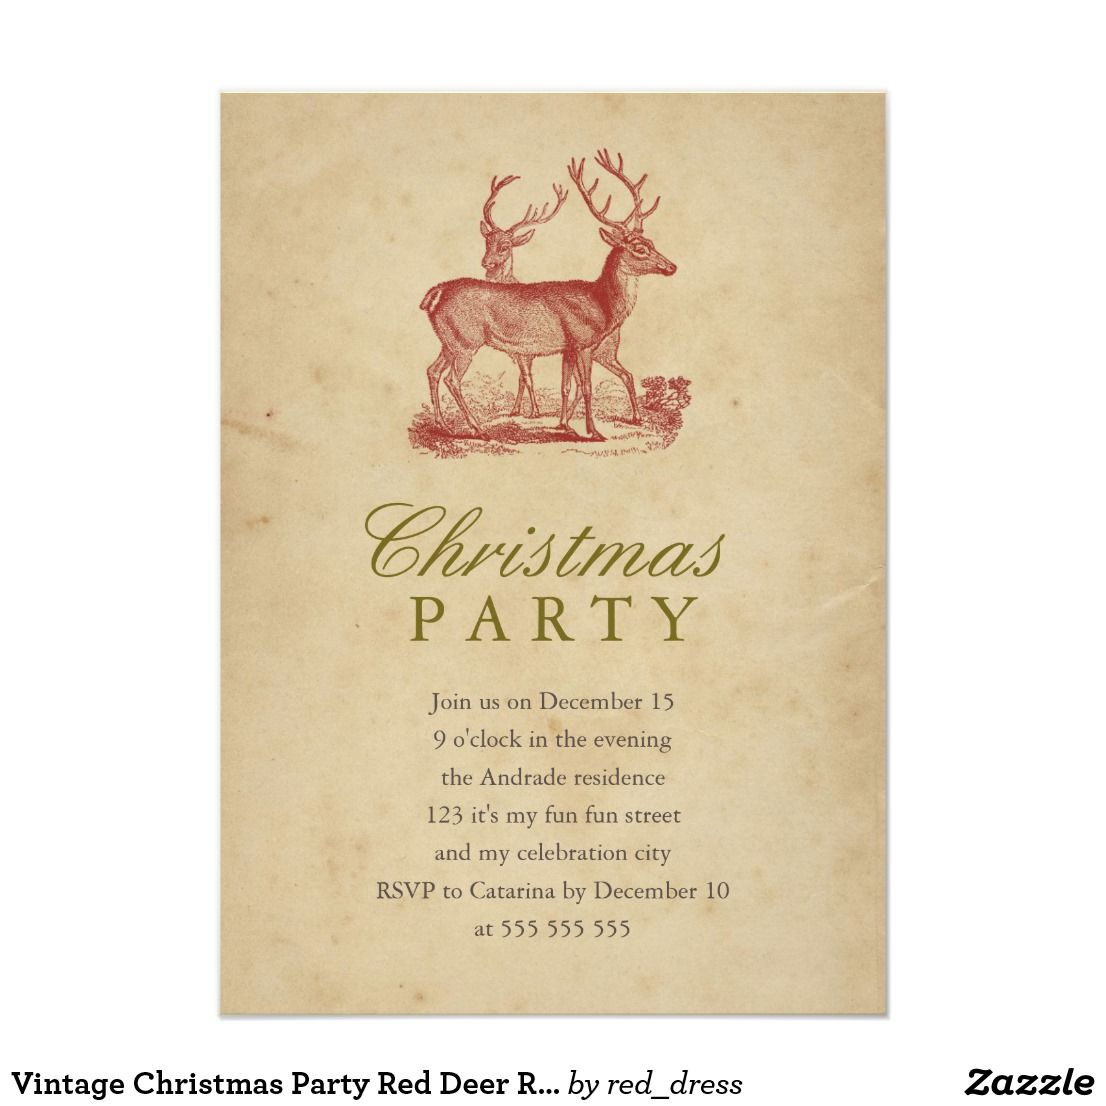 Vintage Christmas Party Red Deer Rustic Holiday Invitation Zazzle Com Vintage Christmas Party Holiday Invitations Christmas Card Trends